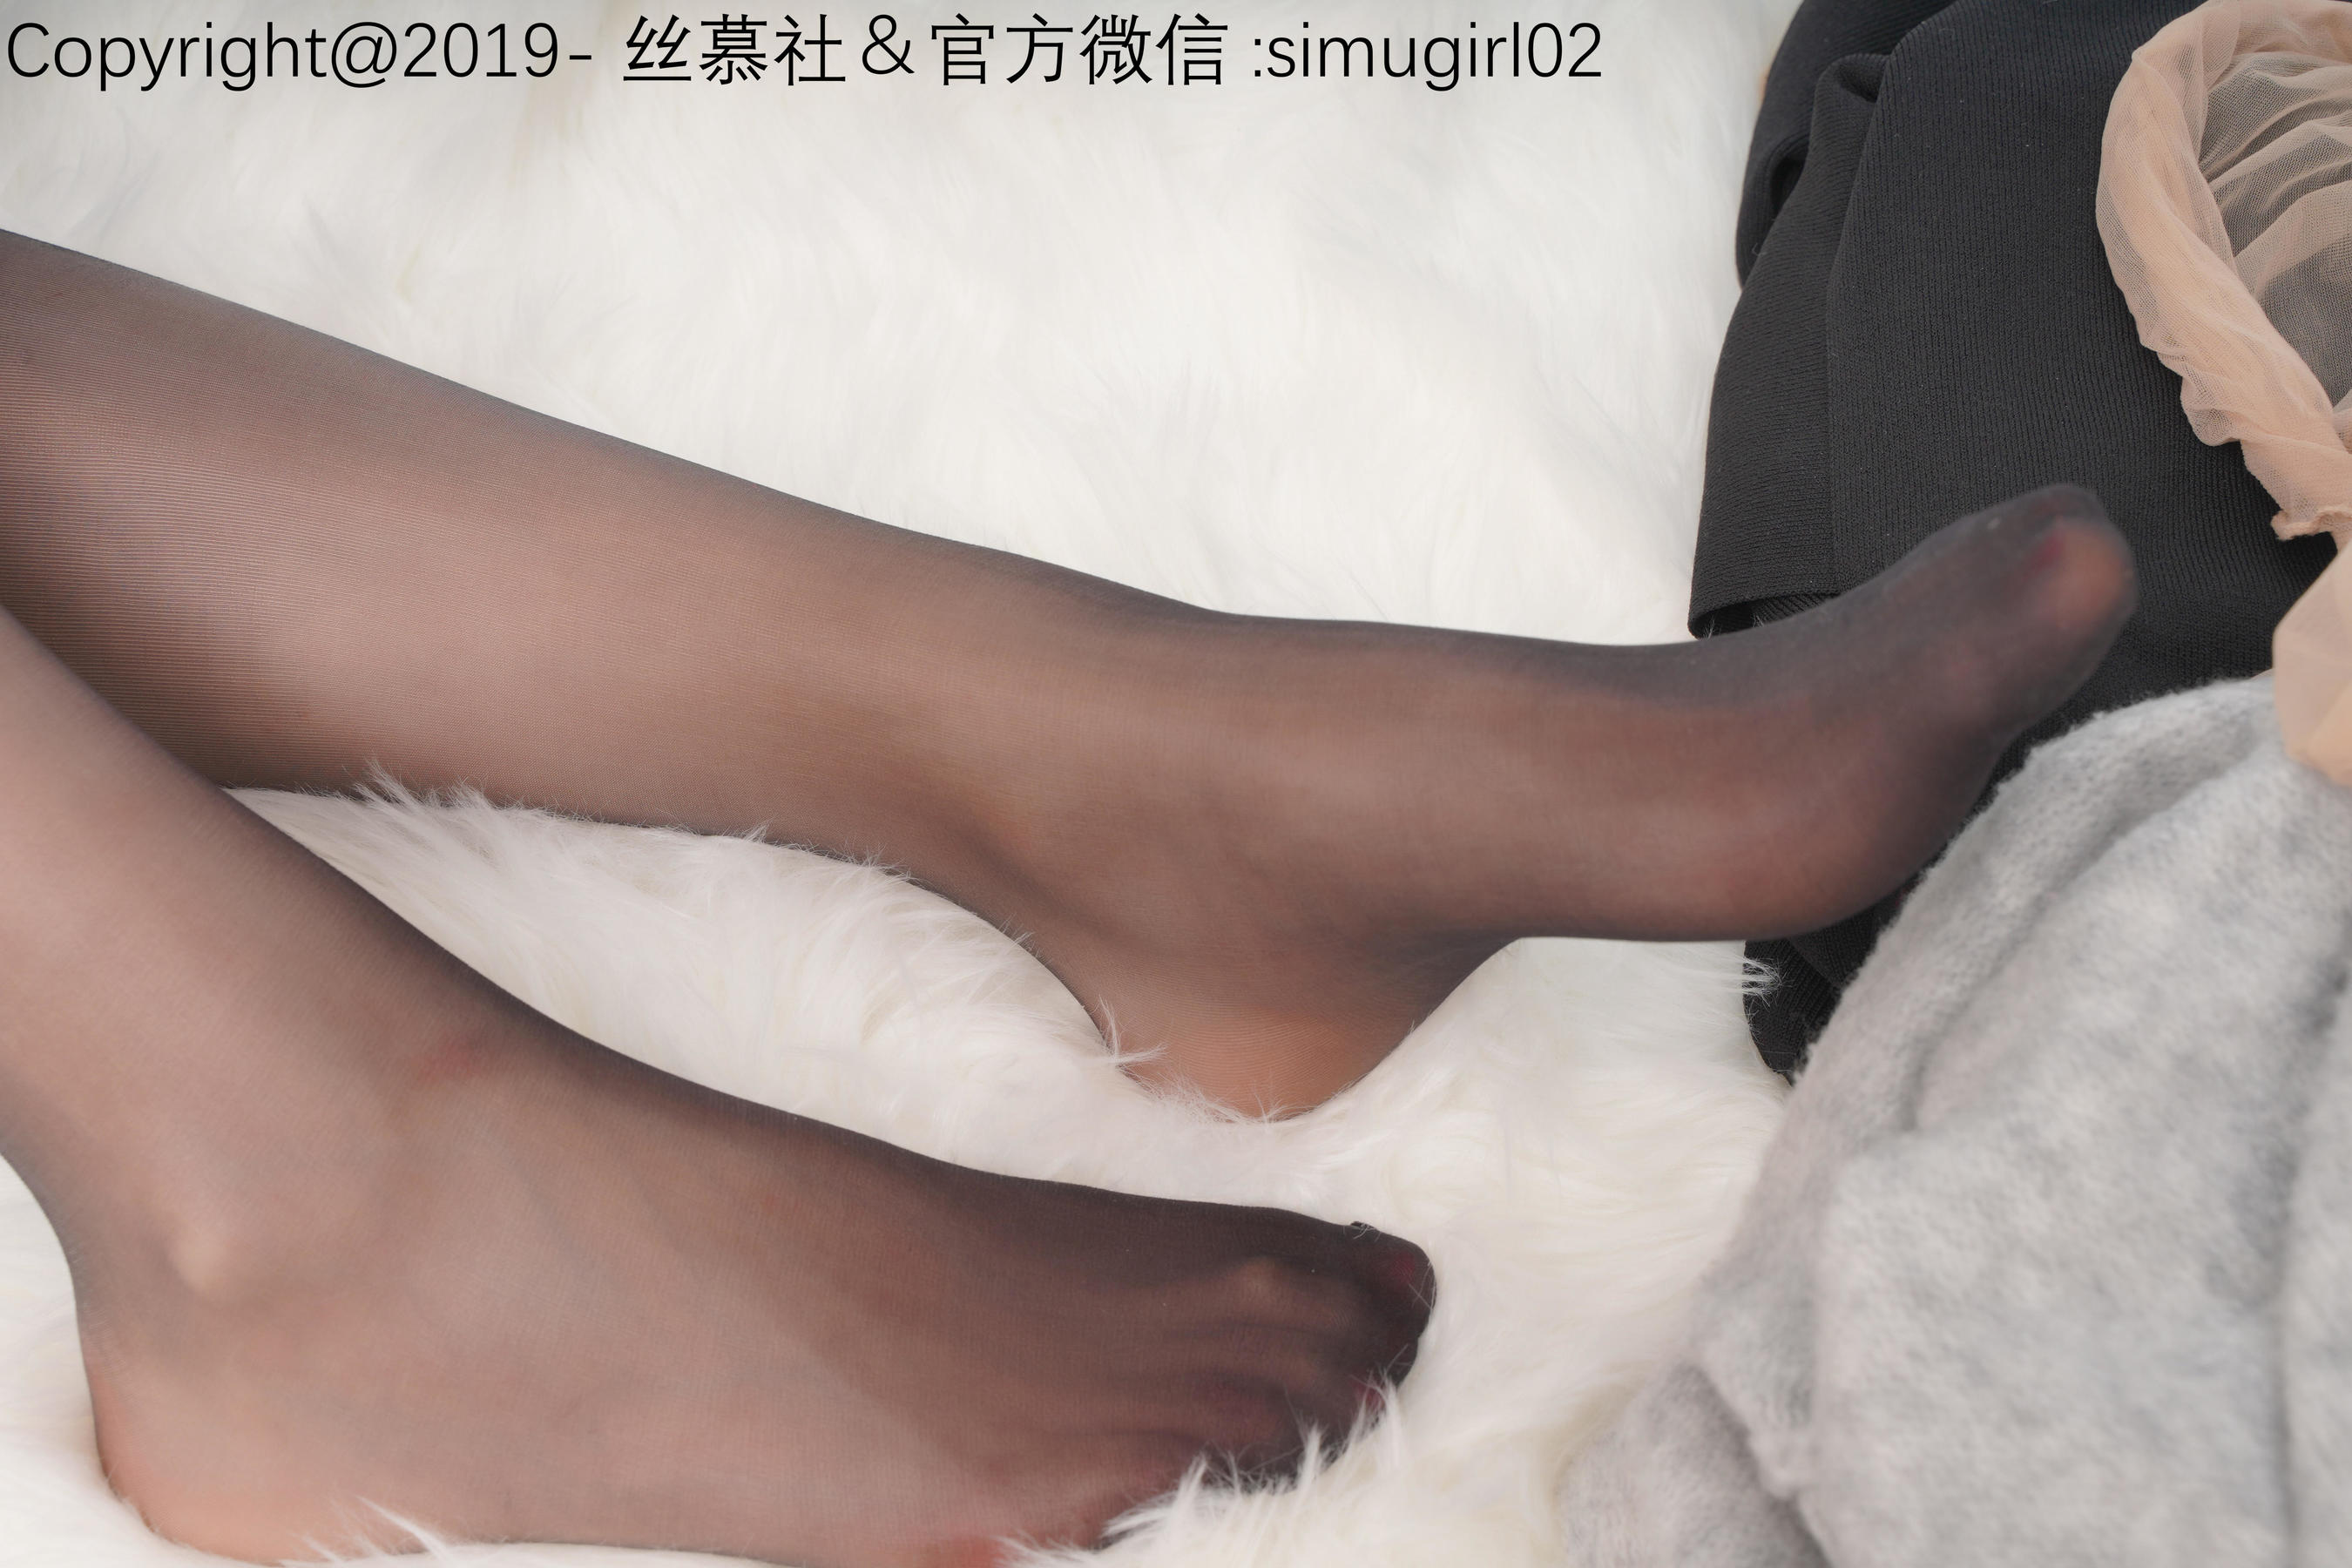 """[Simu] SM010 Yueyue-""""The Delight of Silky Foot"""" 59"""